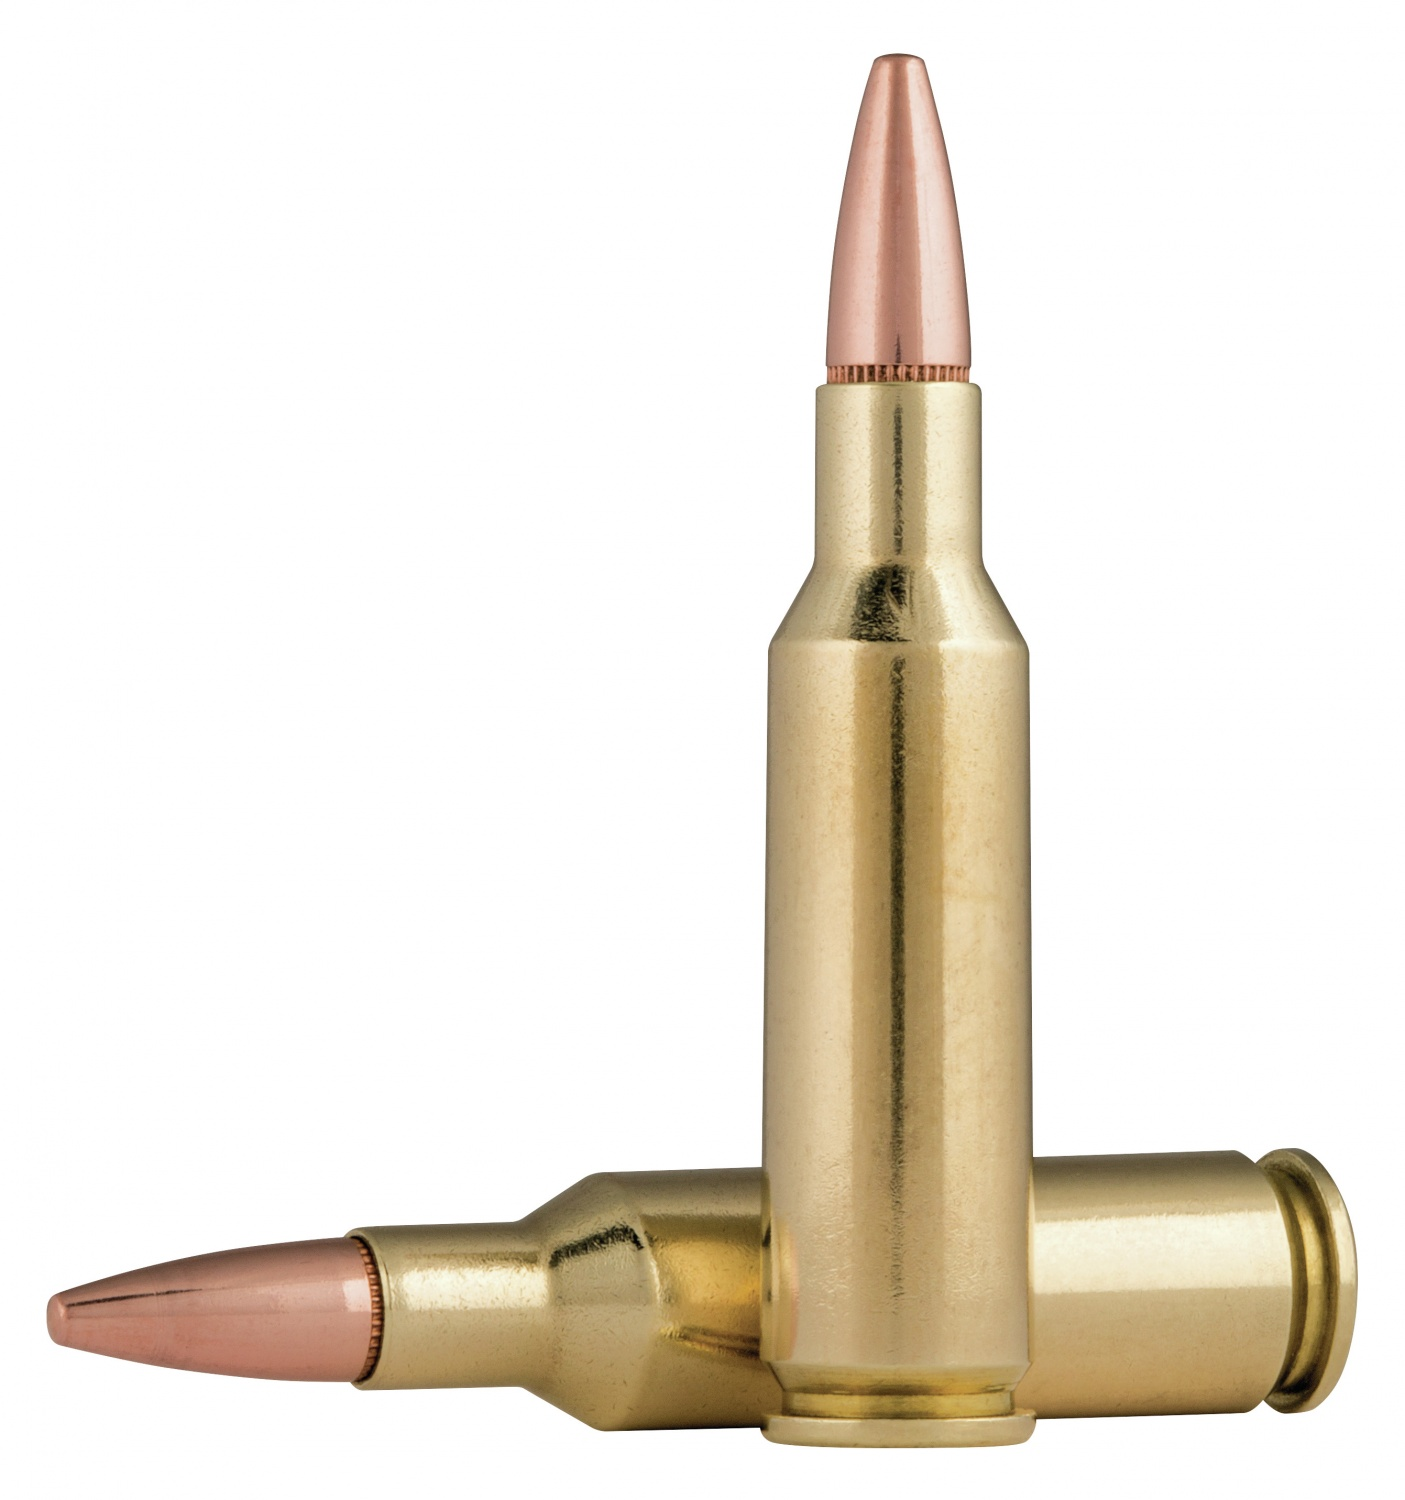 hight resolution of  the 224 caliber as a medium game taker due to lack of heavyweight hunting bullets and the 100gr fusion seems like more than enough to fill that niche